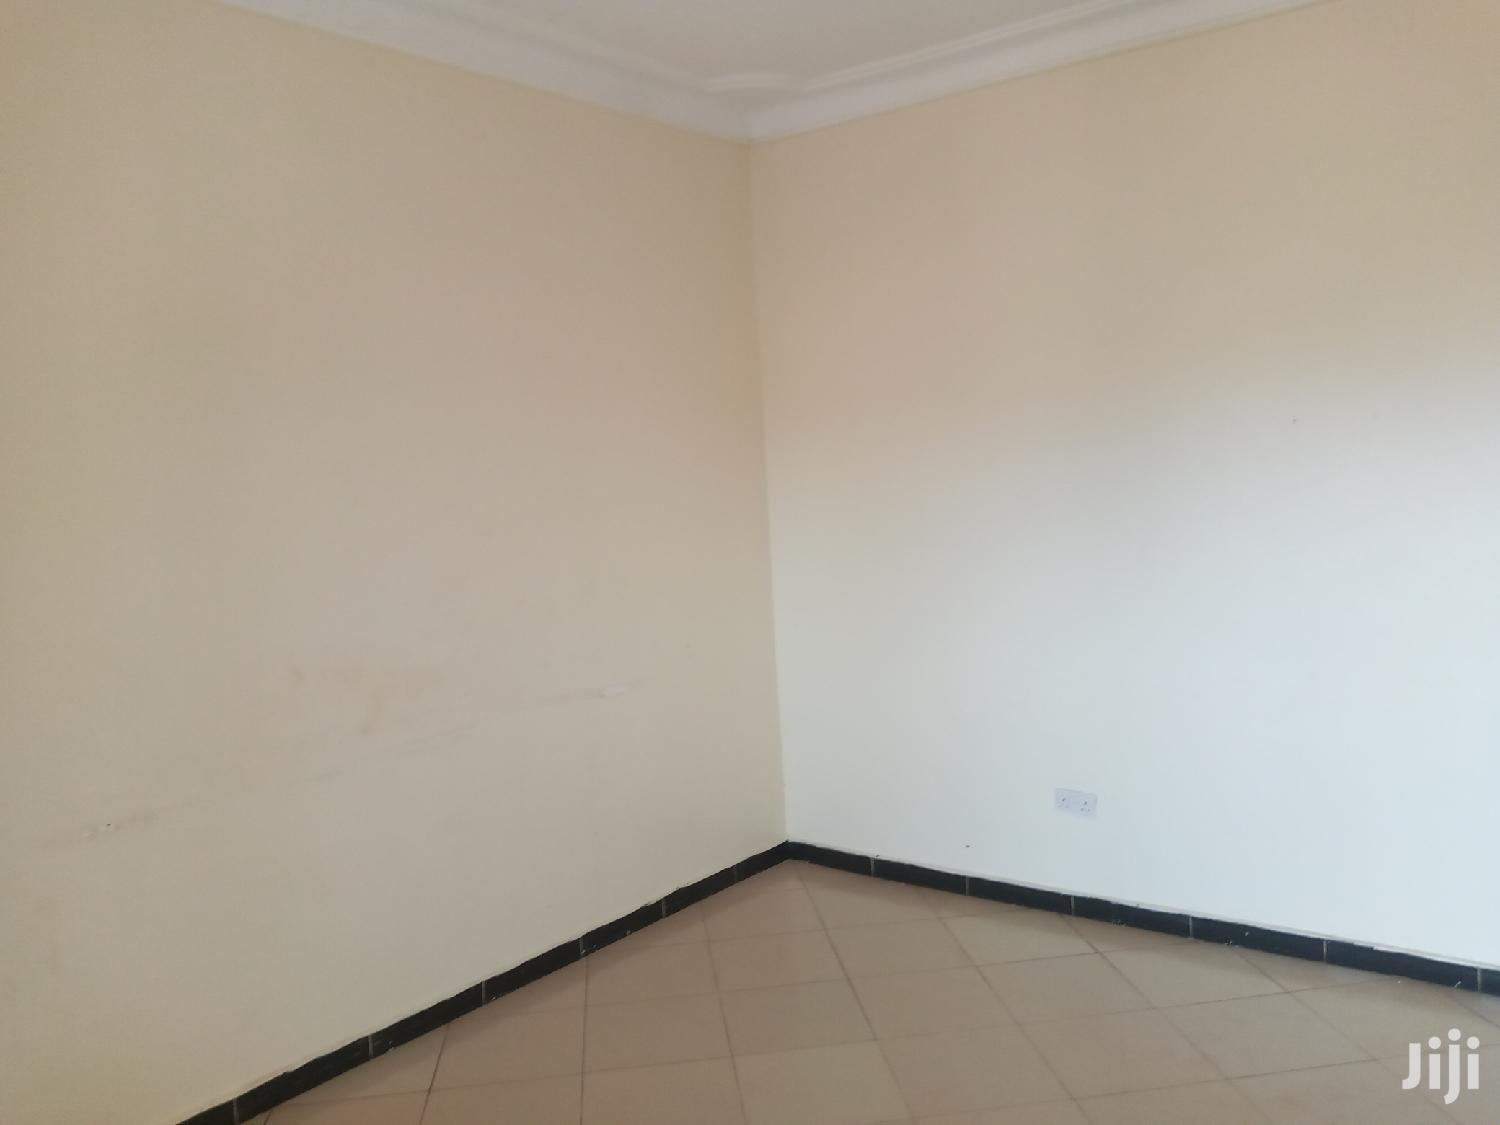 Comercial Shops On Forcedsale After Munyonyo On Ntebe Expres | Commercial Property For Sale for sale in Kampala, Central Region, Uganda